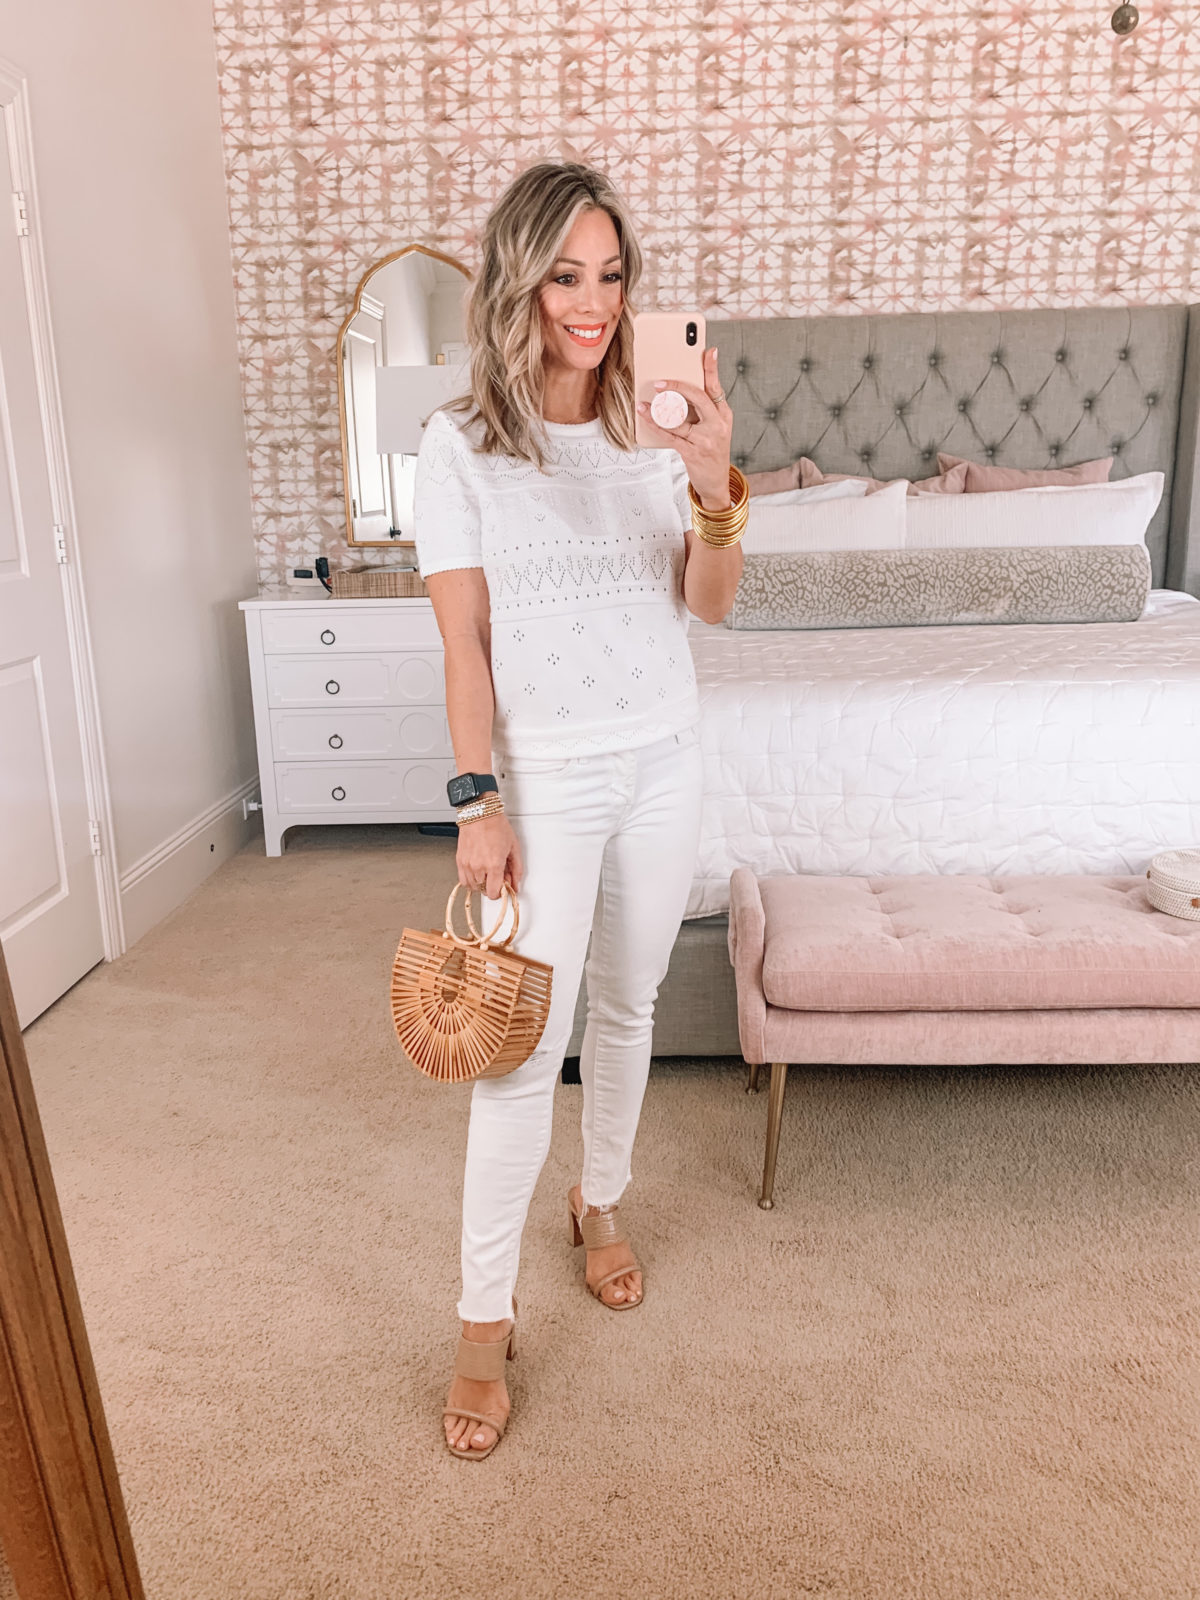 Amazon Fashion Faves, White Embroidered Top, White Jeans, Sandals, Bamboo Clutch